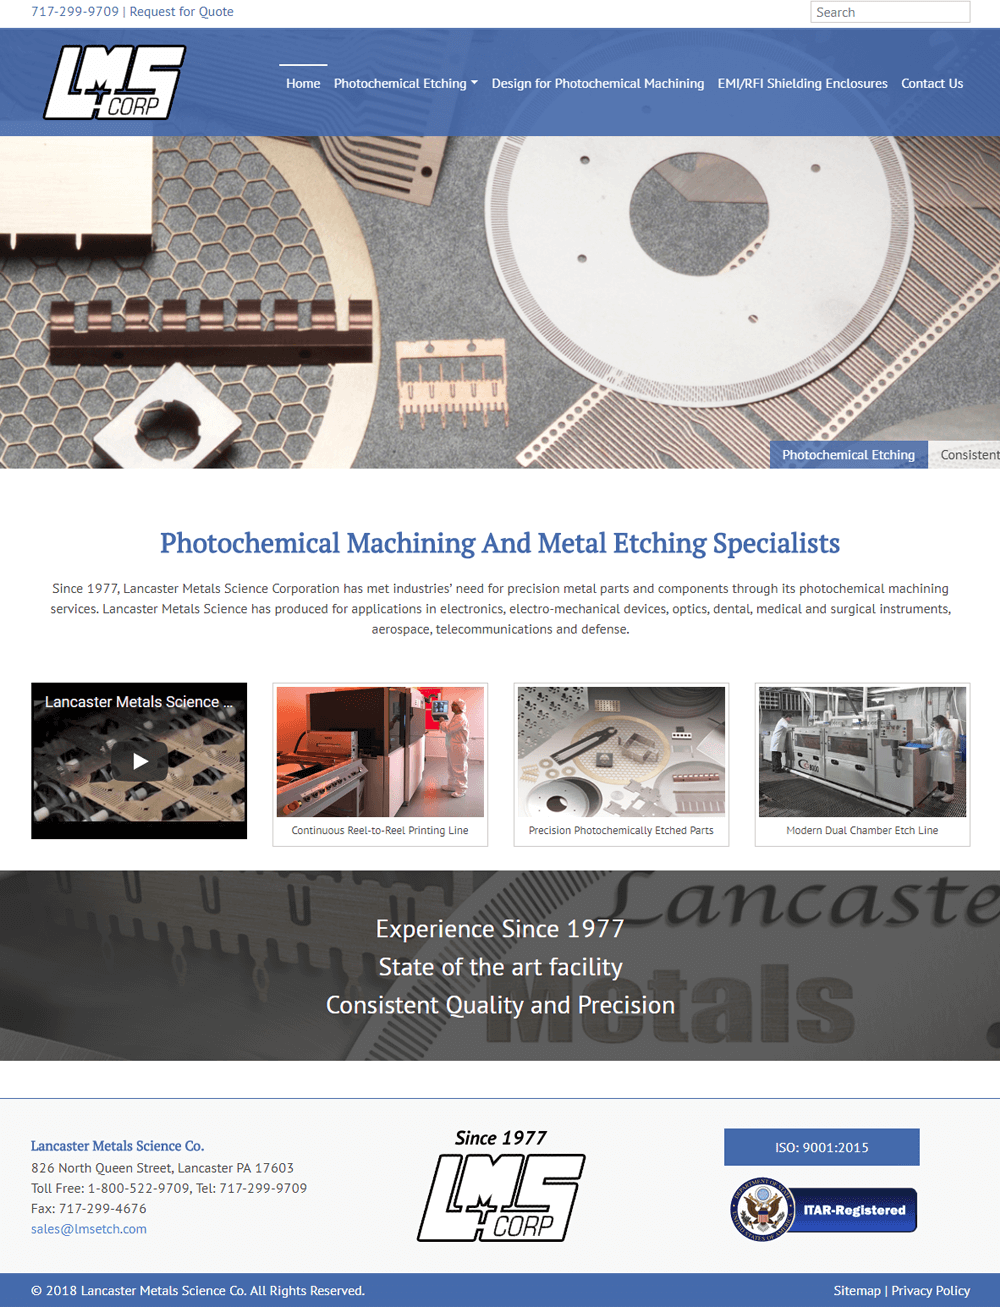 Lancaster Metals Science Corporation